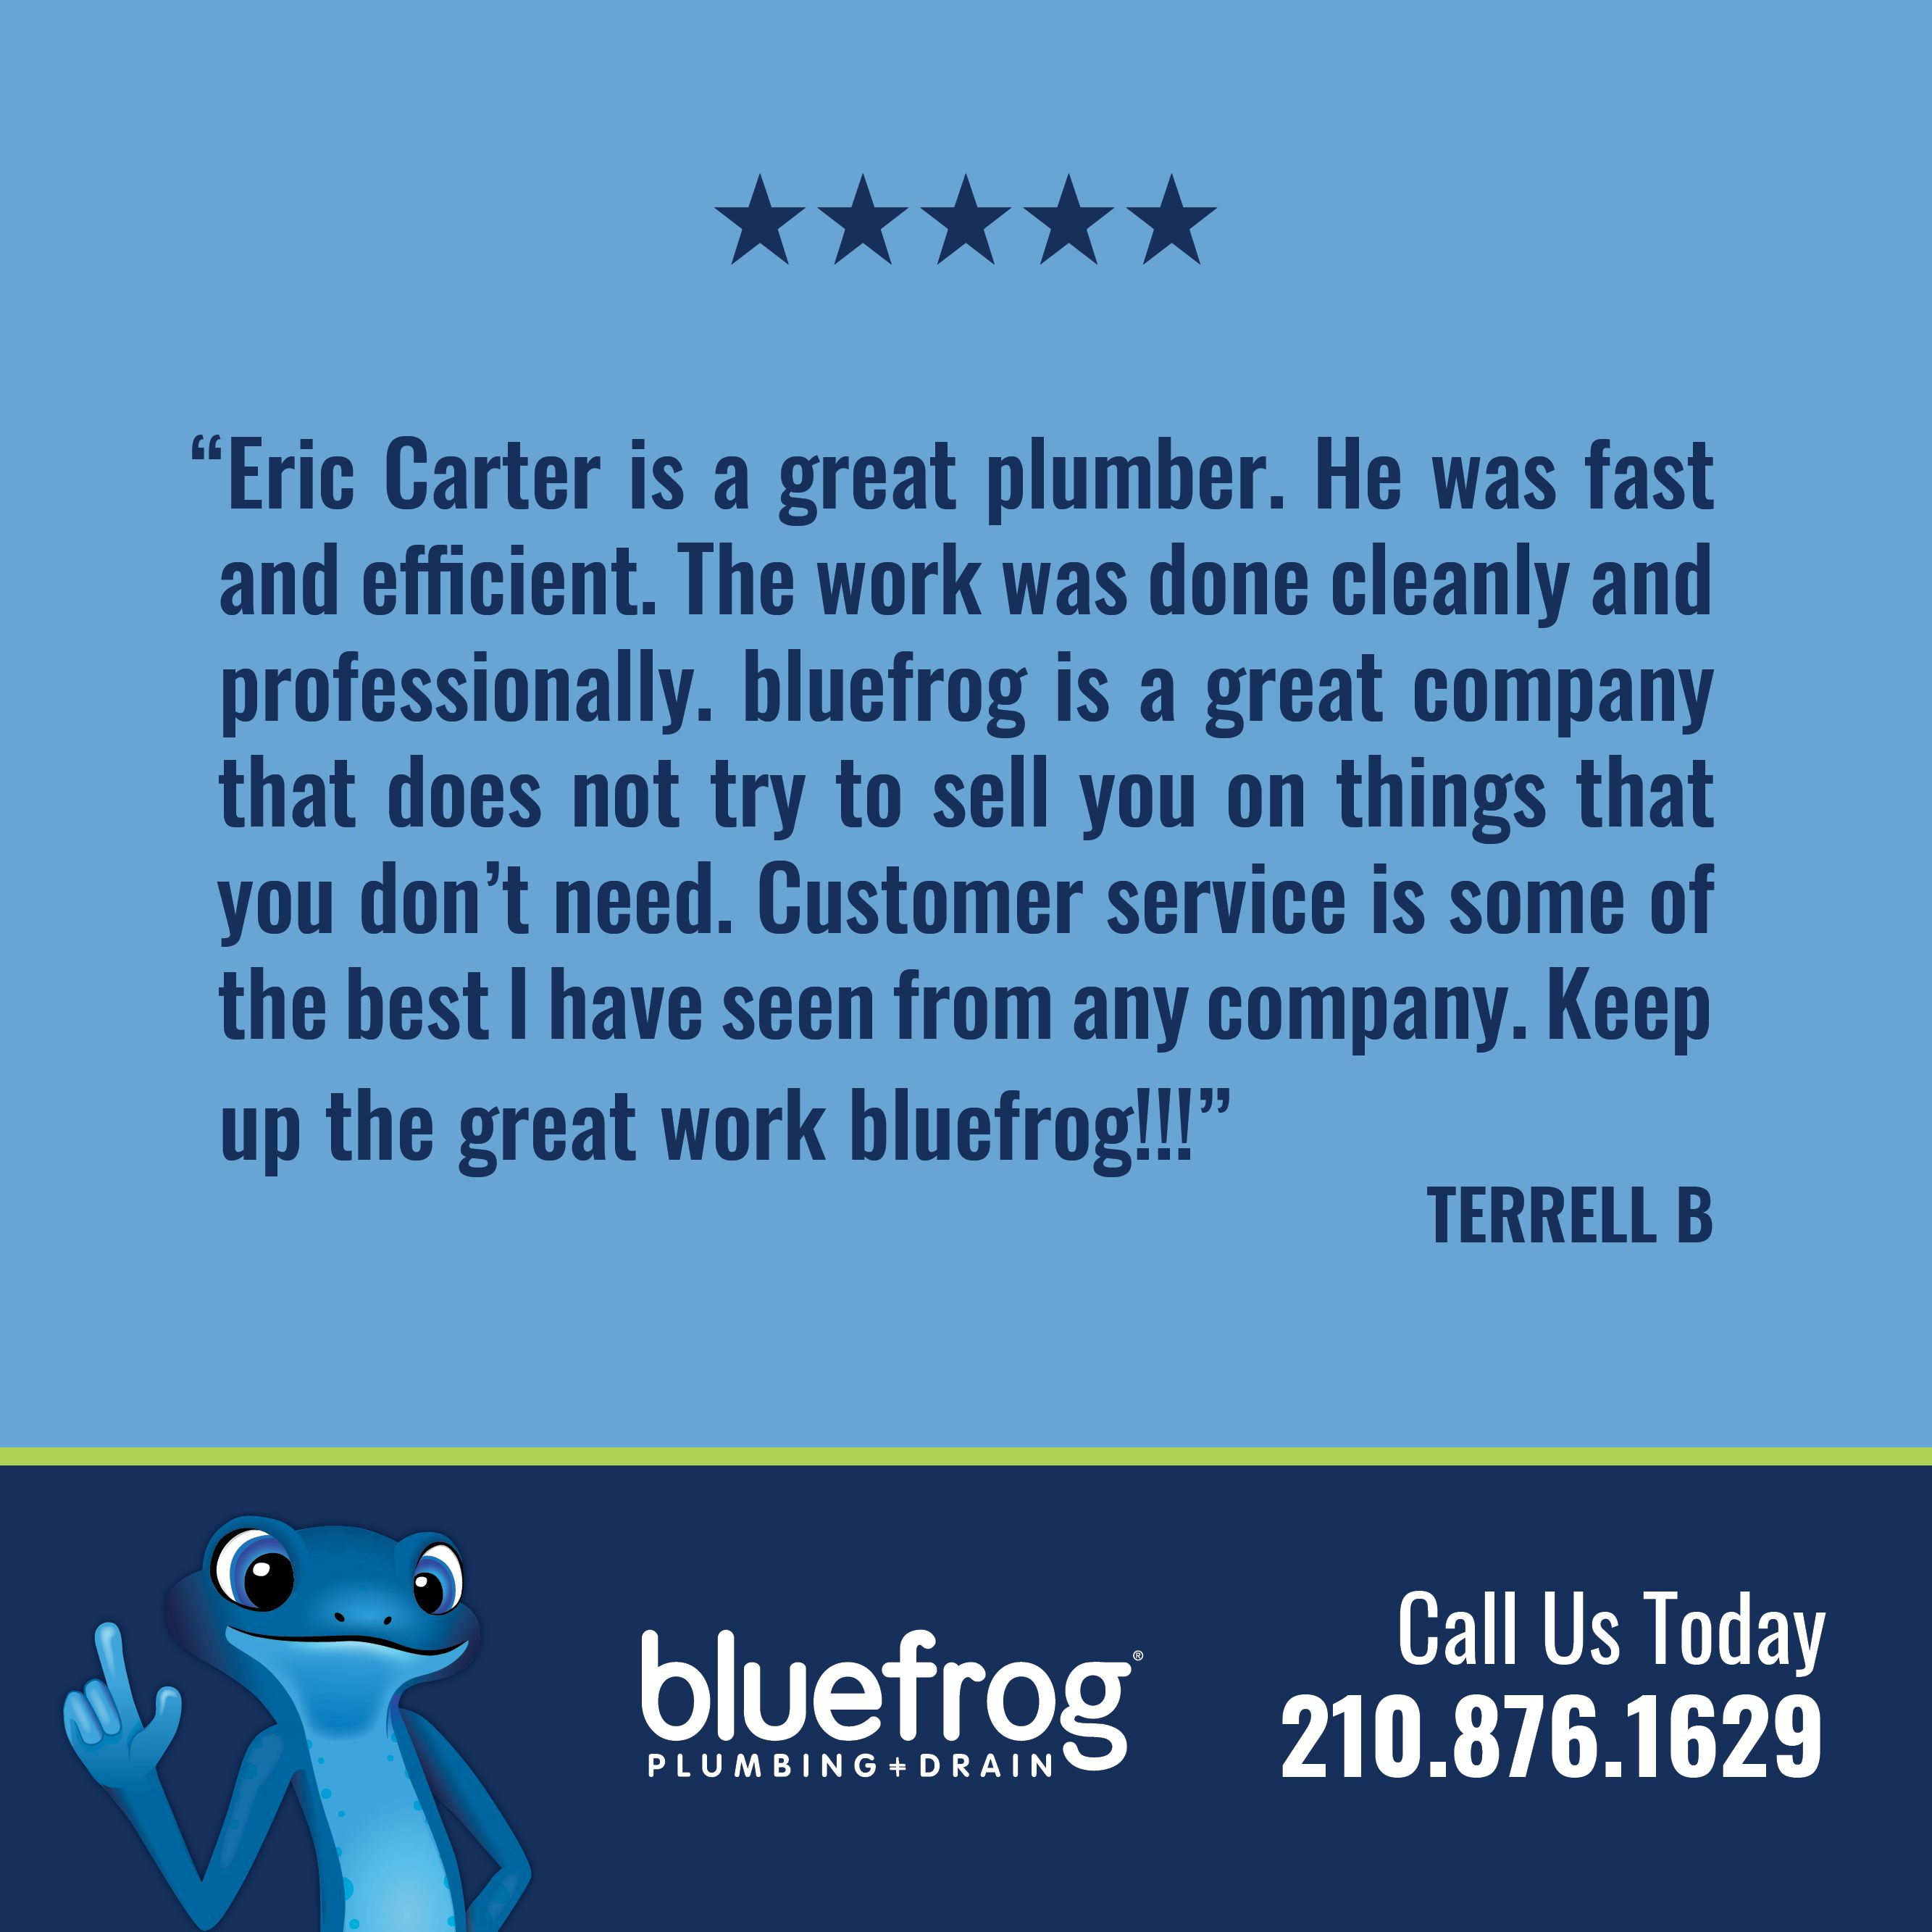 Here S Another Great Review From You Contact Us Today For Plumbing Service In The San Antonio Area Plum Plumbing Drains Plumbing Emergency Plumbing Problems